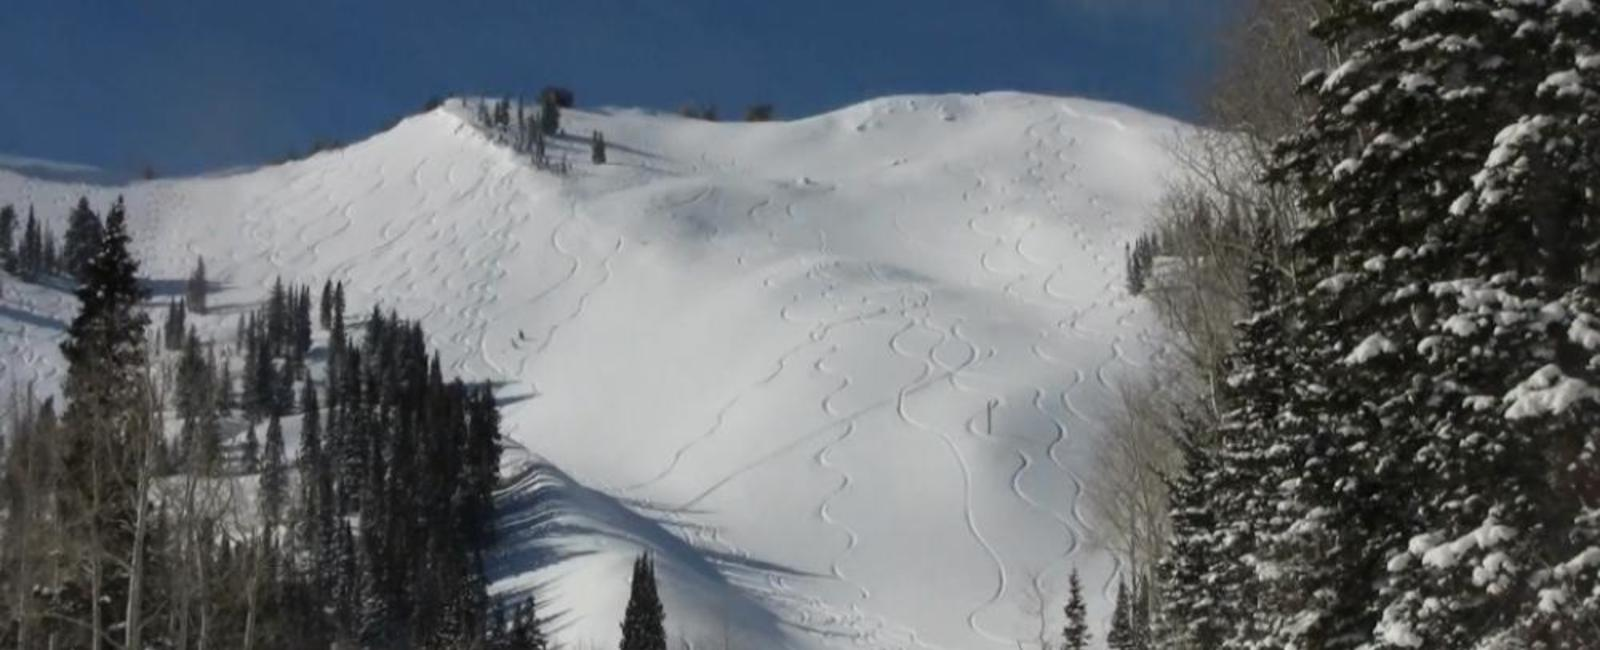 Canyons Resort - Great backcountry access!